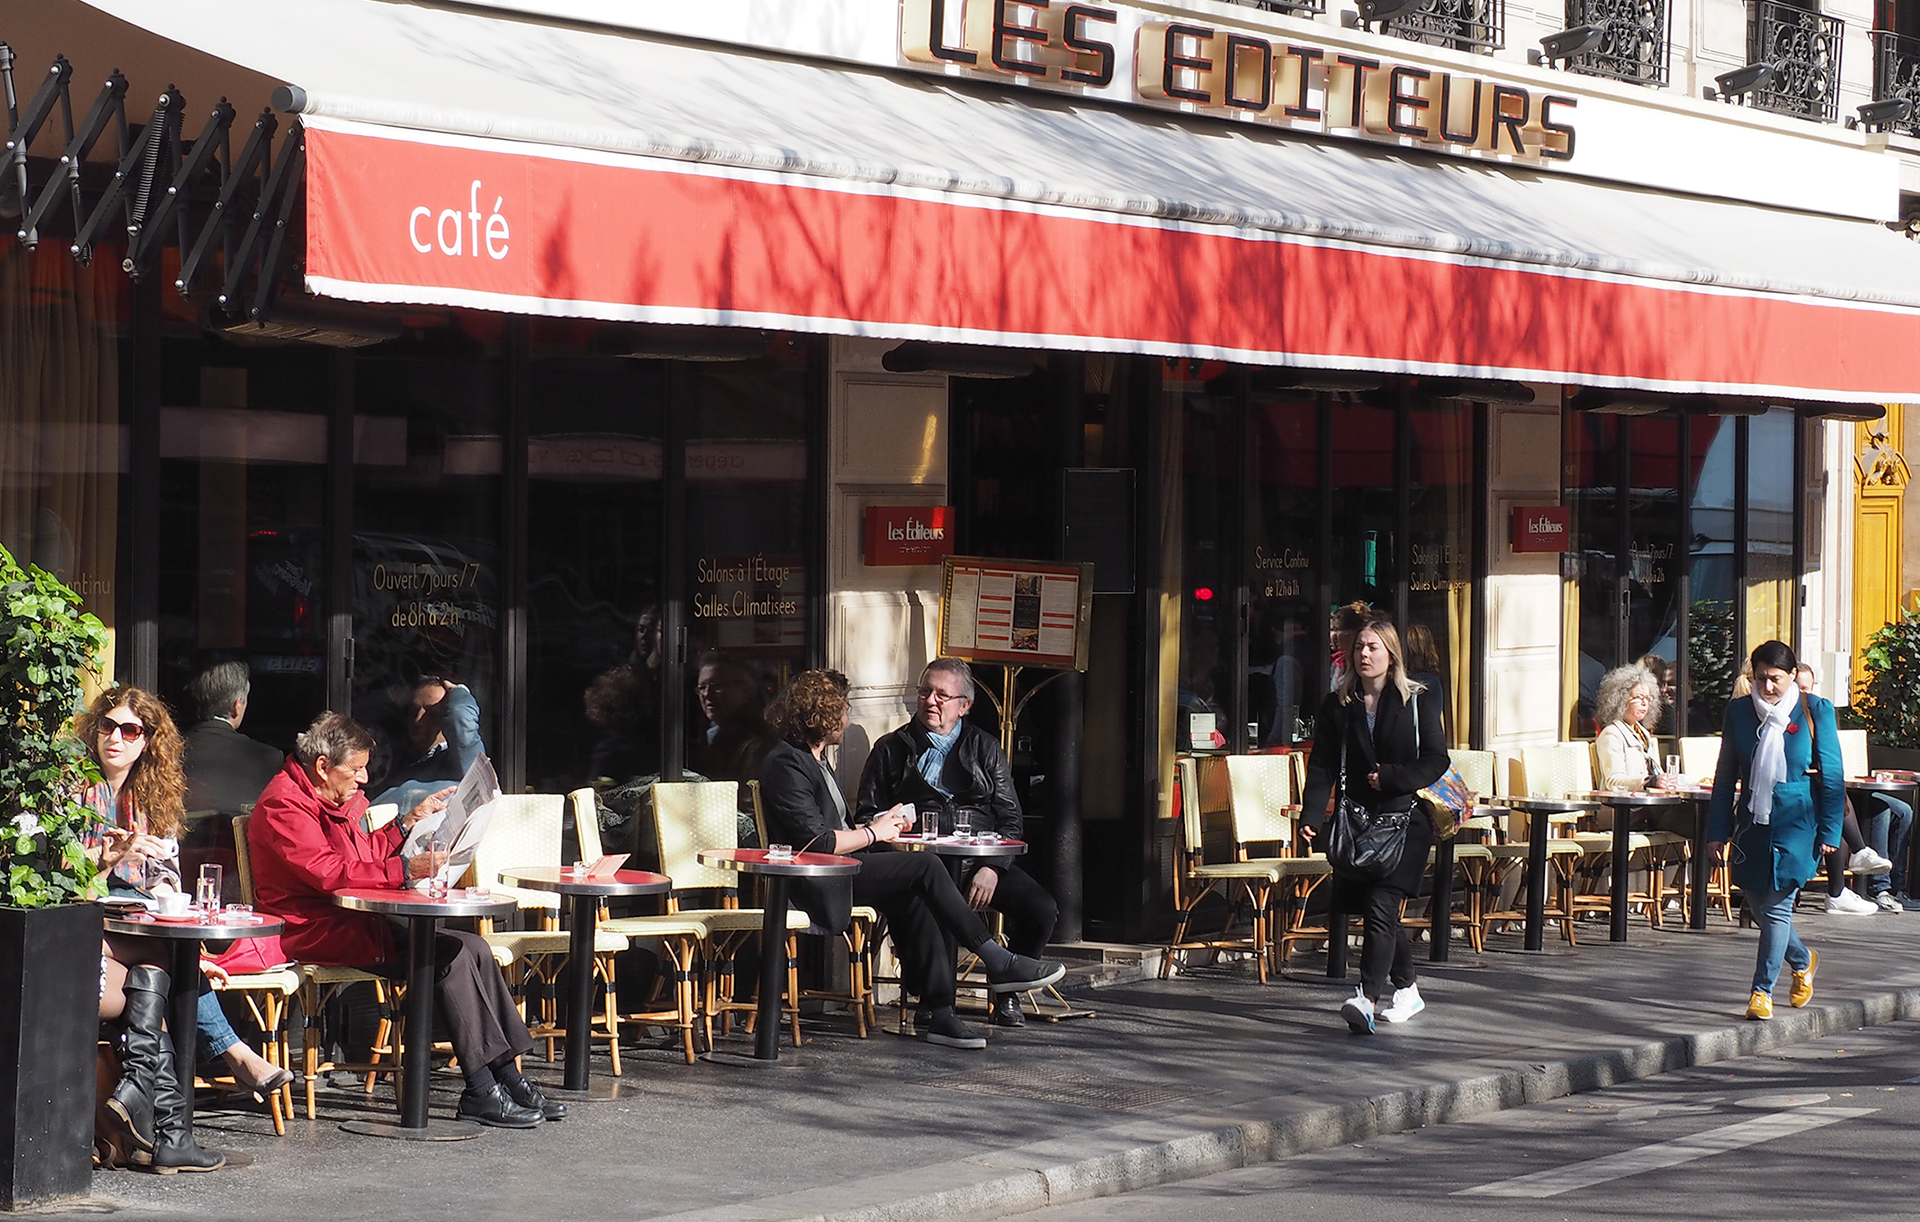 A Wonderful Paris Cafe